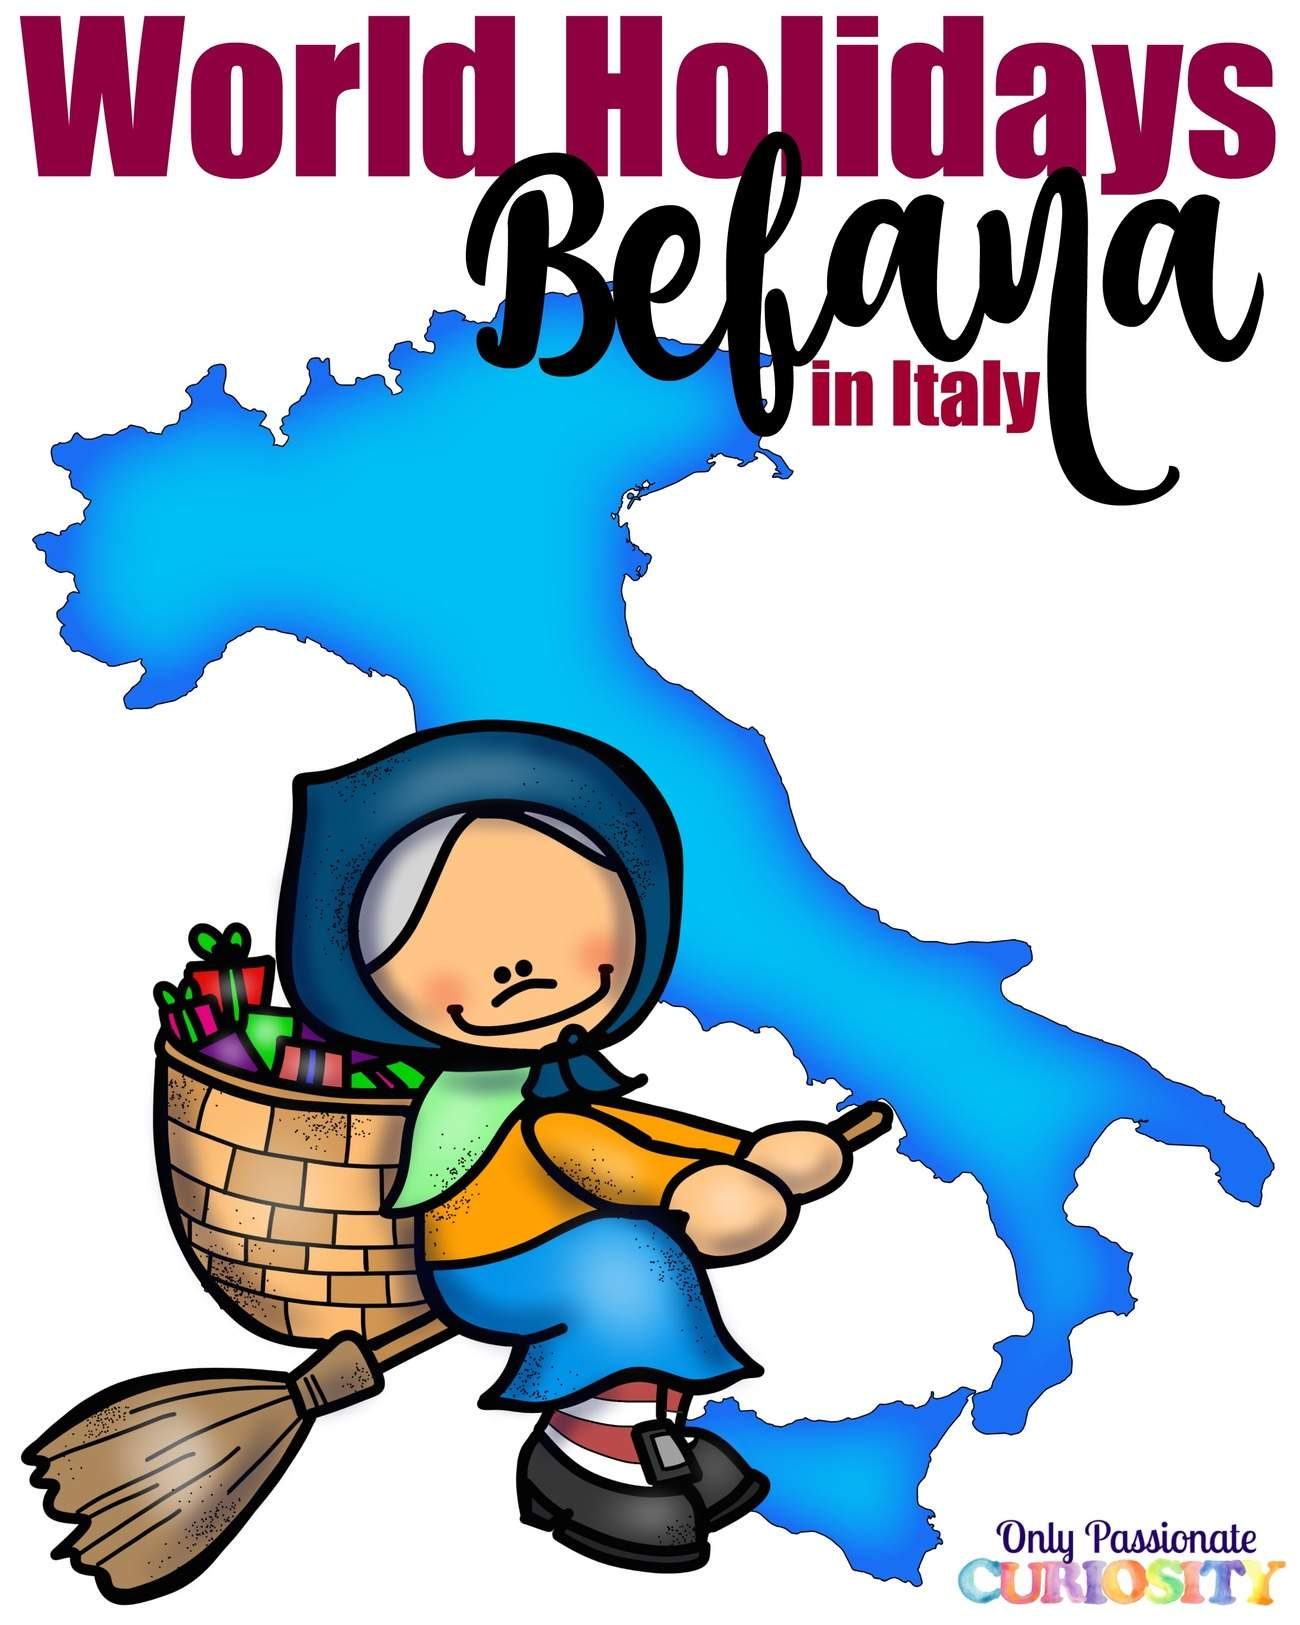 World Traditions Befana In Italy Only Passionate Curiosity